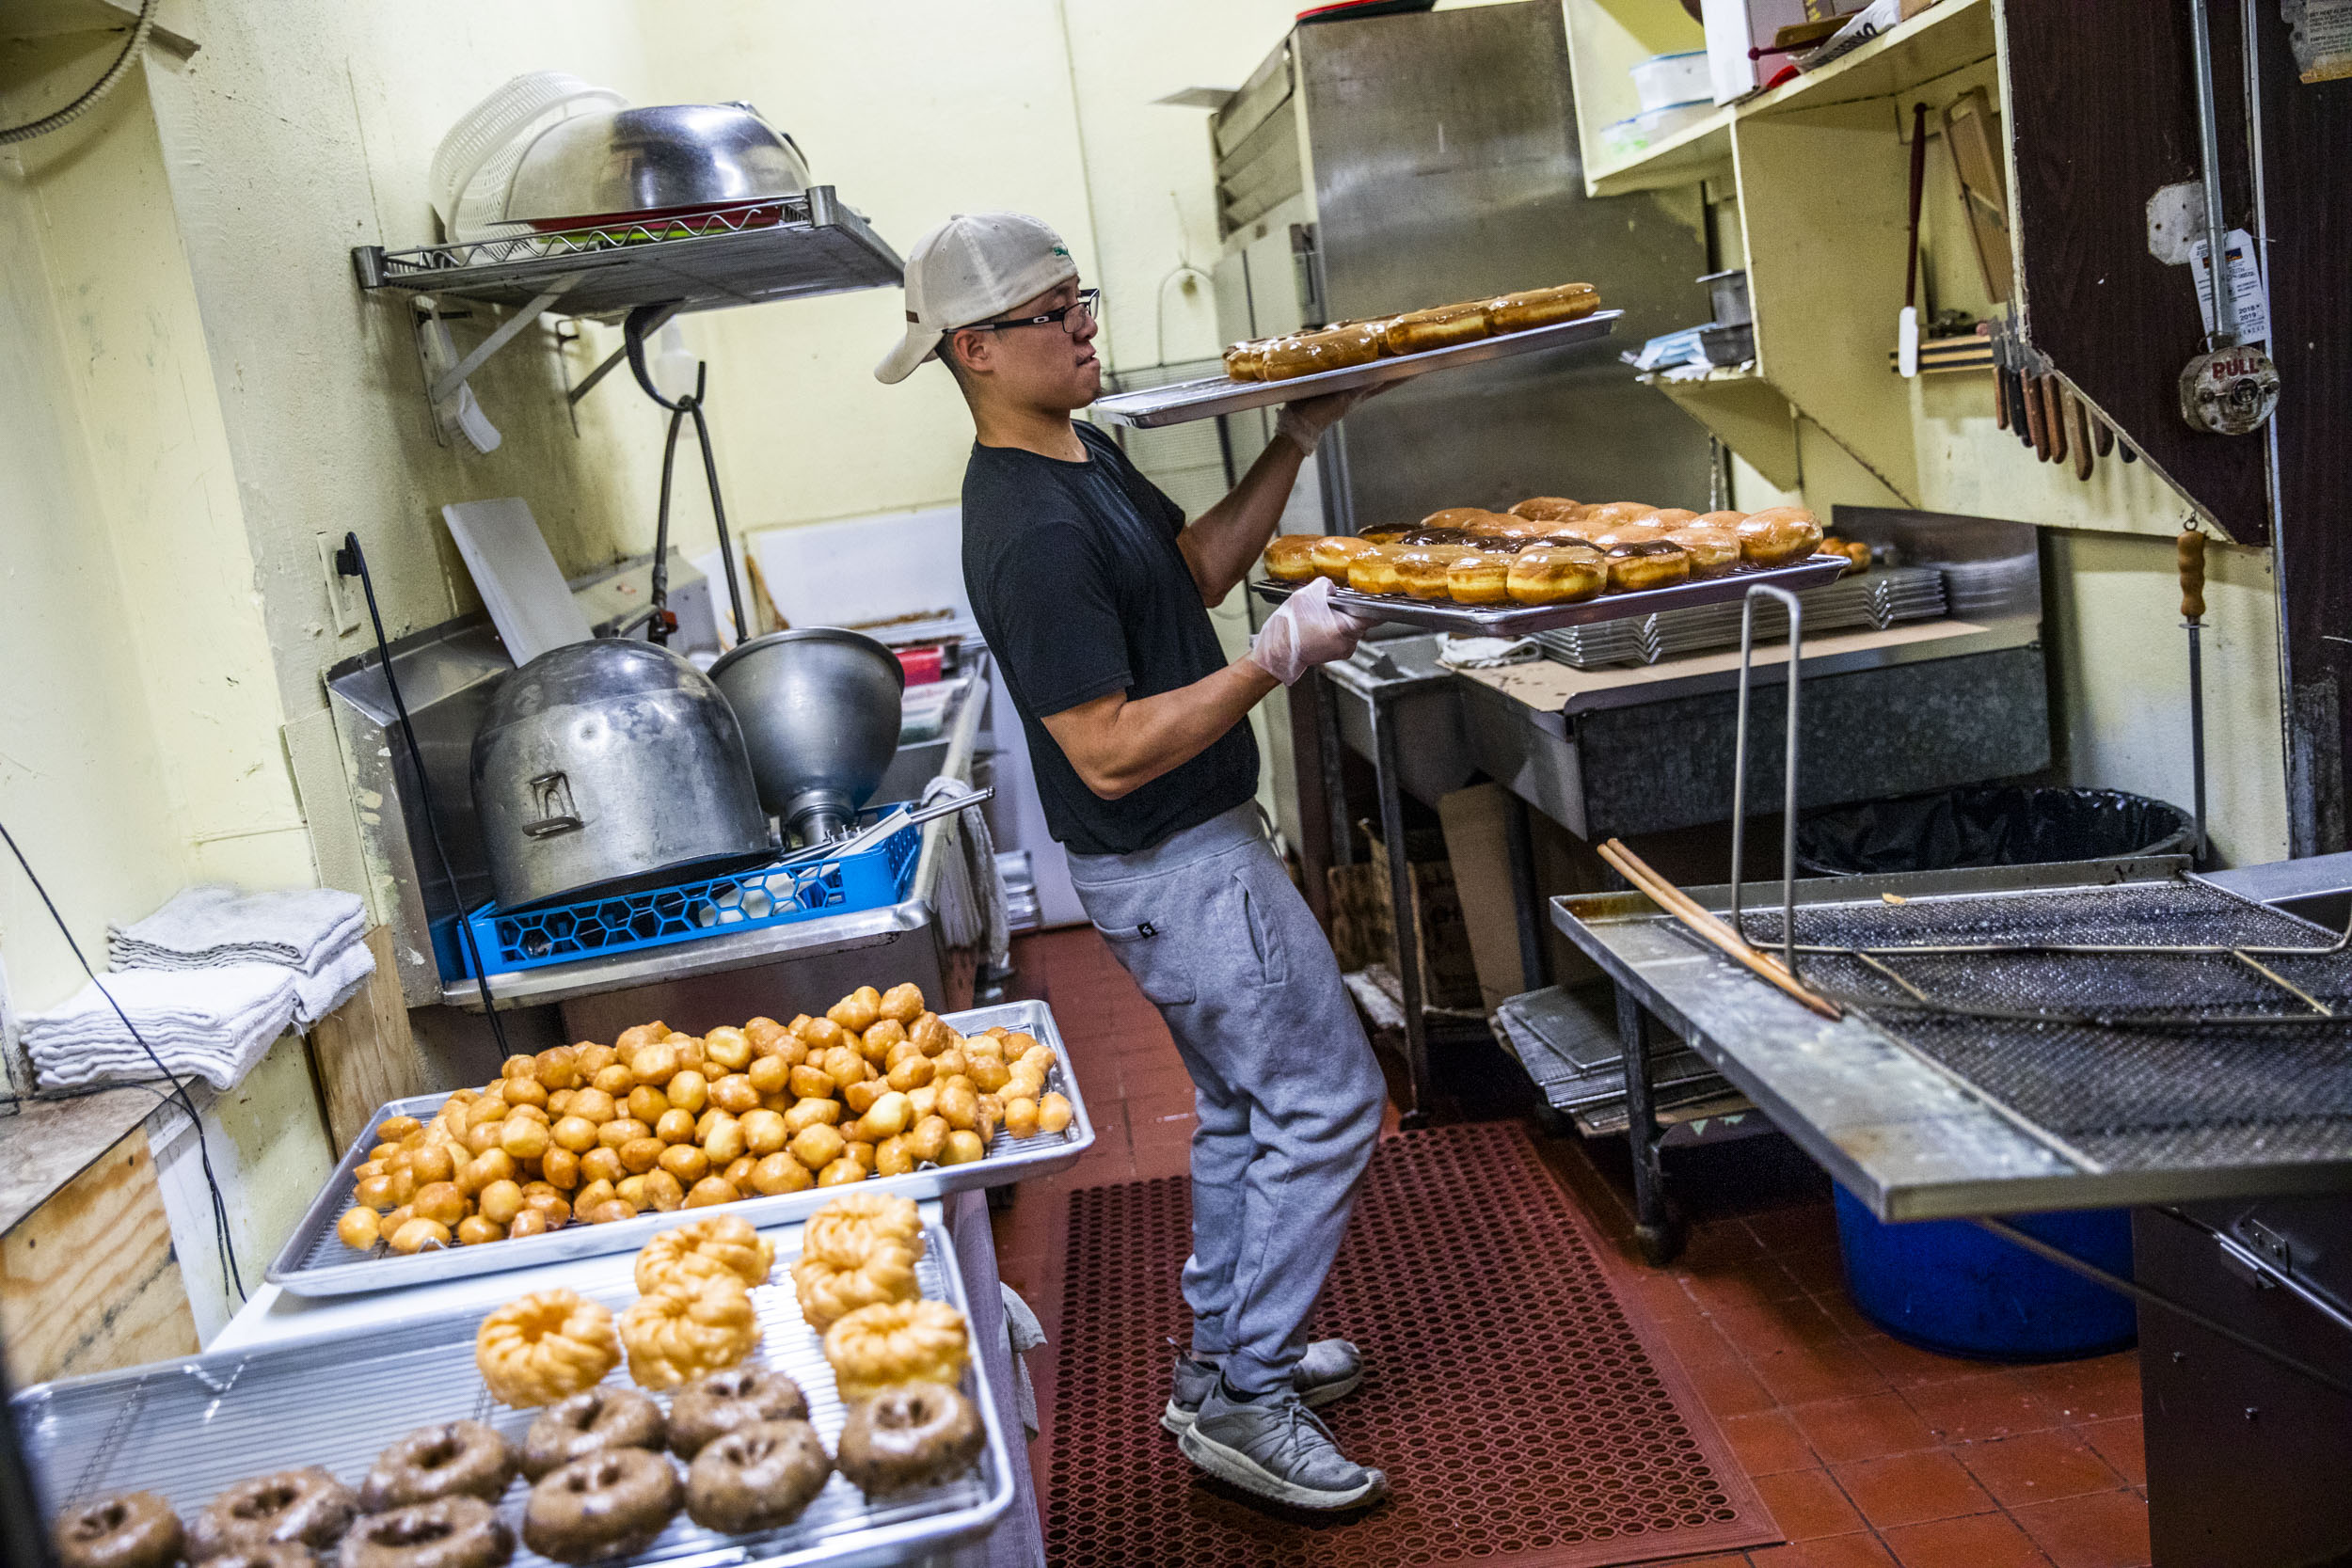 Travis Chhuor, 30, prepares doughnuts in the morning at King Donuts in Rainier Beach on Sunday, Nov. 18, 2018. Chhuor is the sole baker for the shop and often gets to work at 3 a.m.to start on the day's doughnuts.